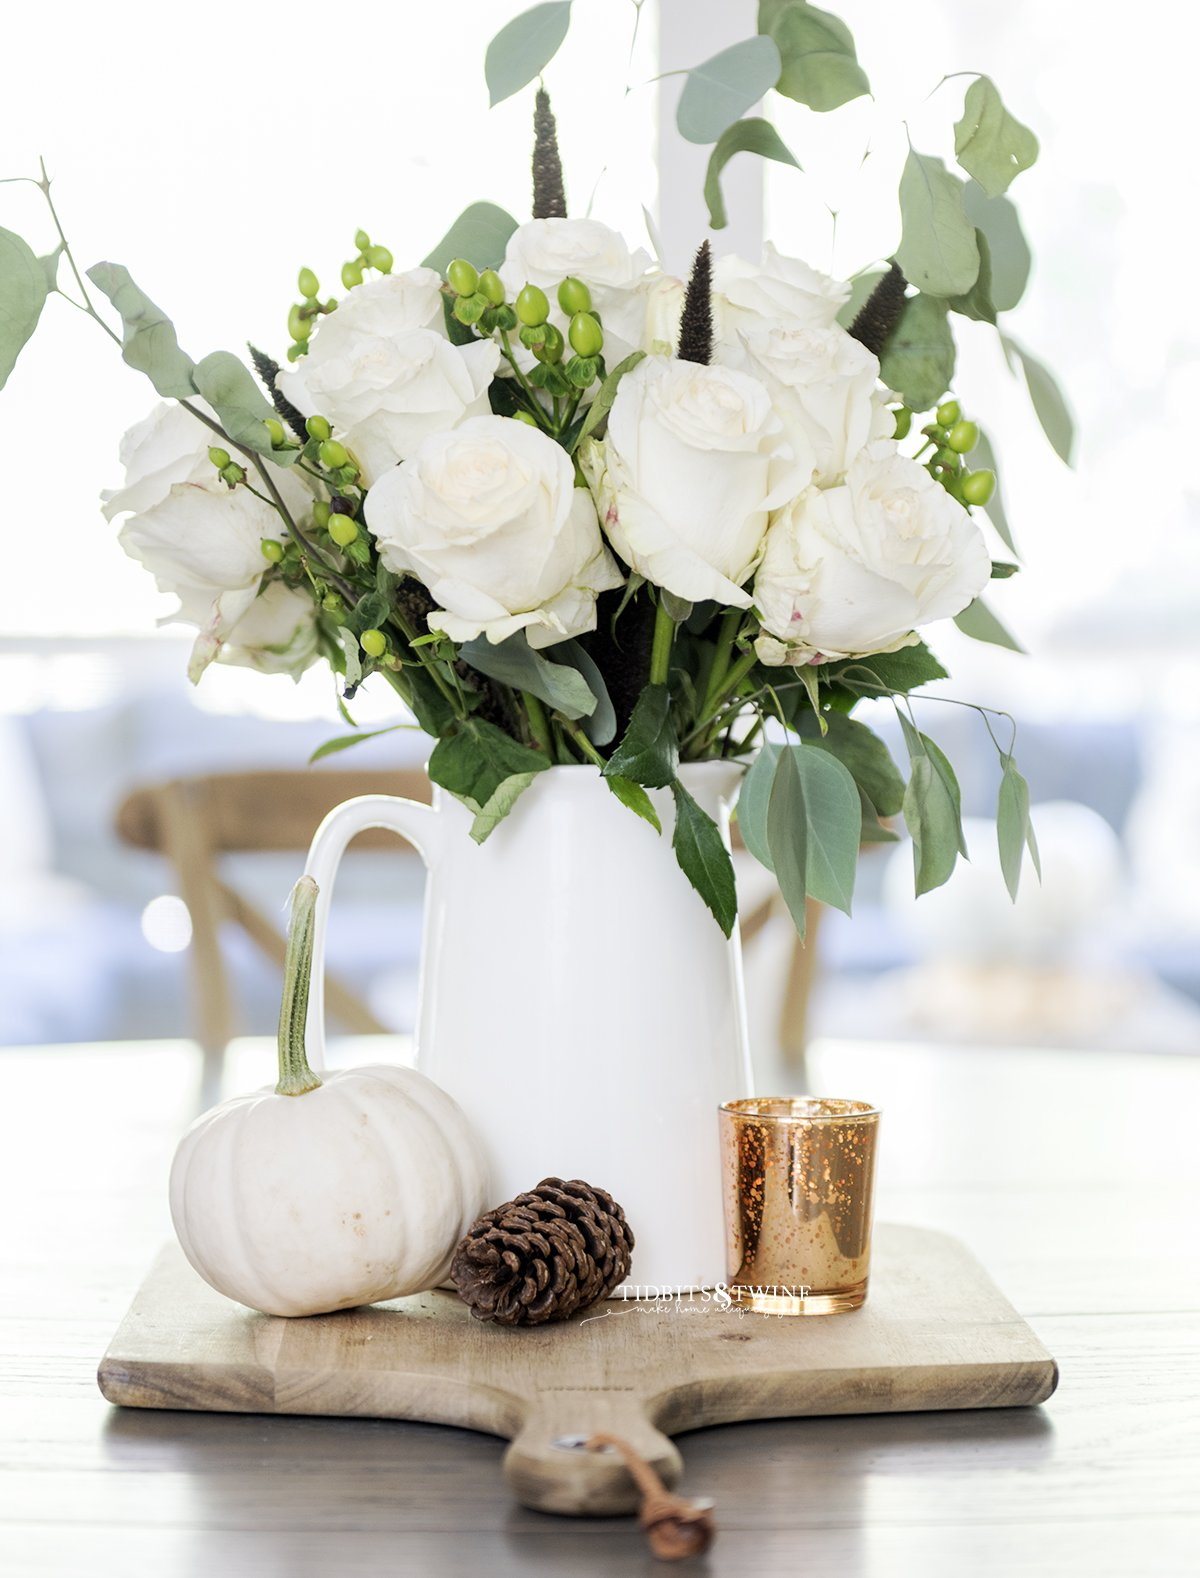 Fall kitchen table centerpiece with white pitcher holding roses and eucalyptus and small white pumpkin at base